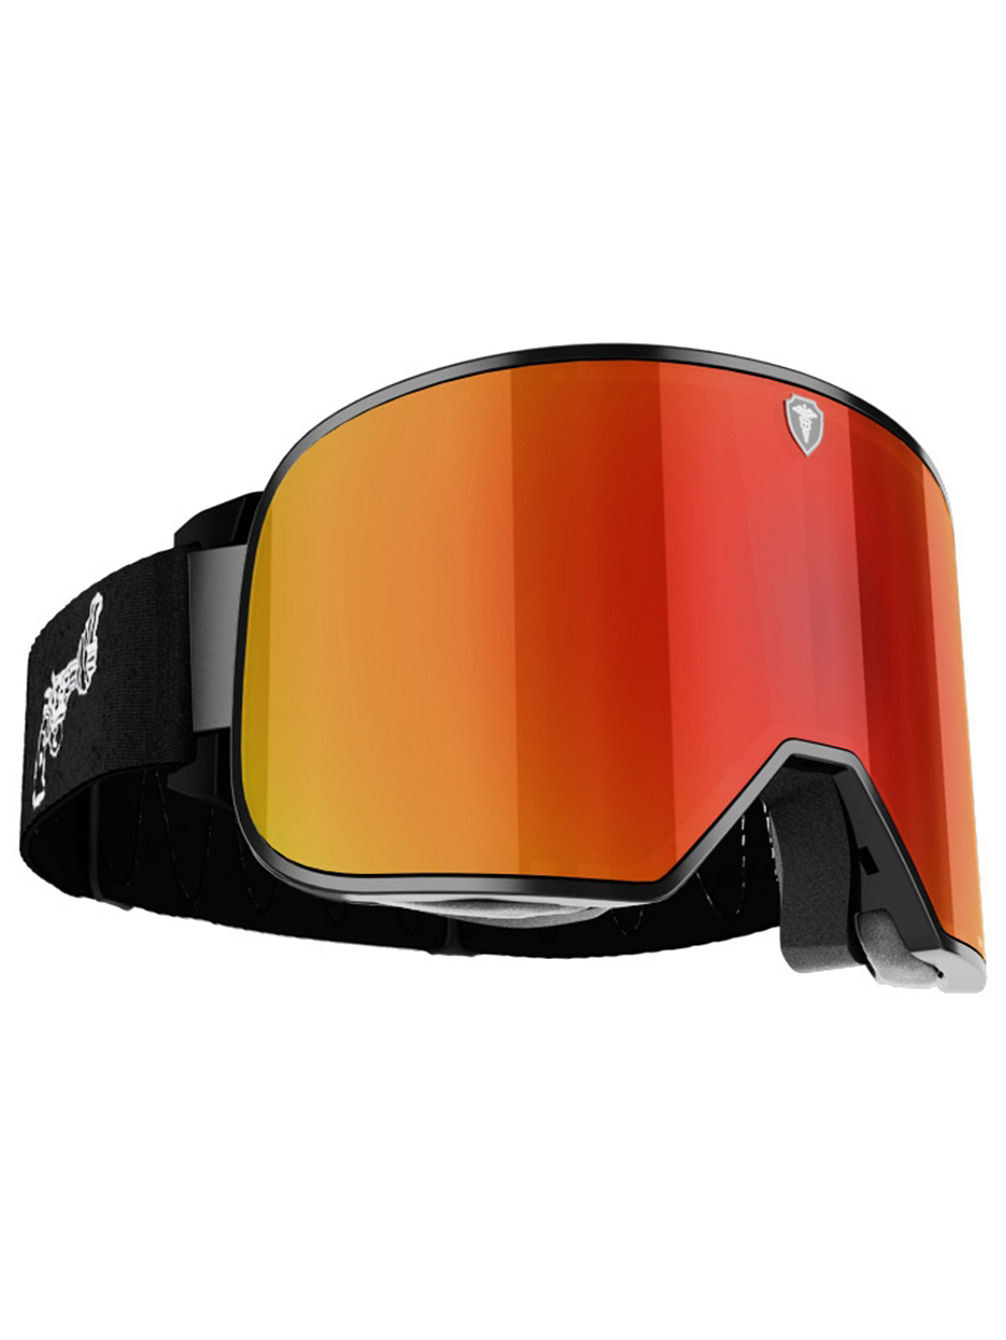 Savage Level 7 Black/White Non Violence Goggle